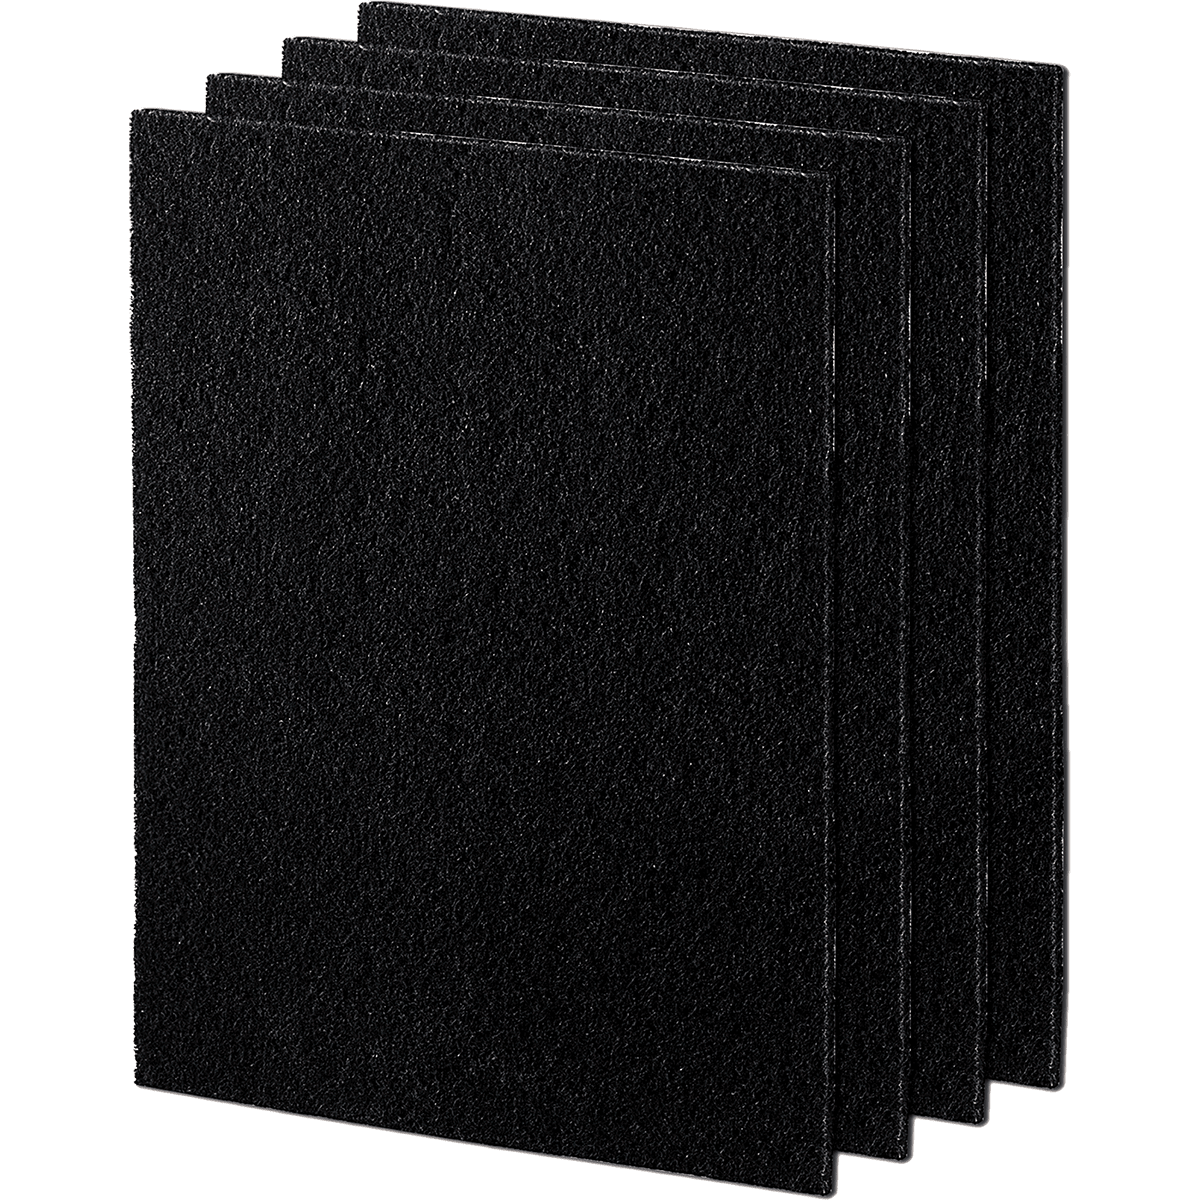 Image of AeraMax Carbon Filters for 190/200/DX55 Air Purifier - 4-Pack